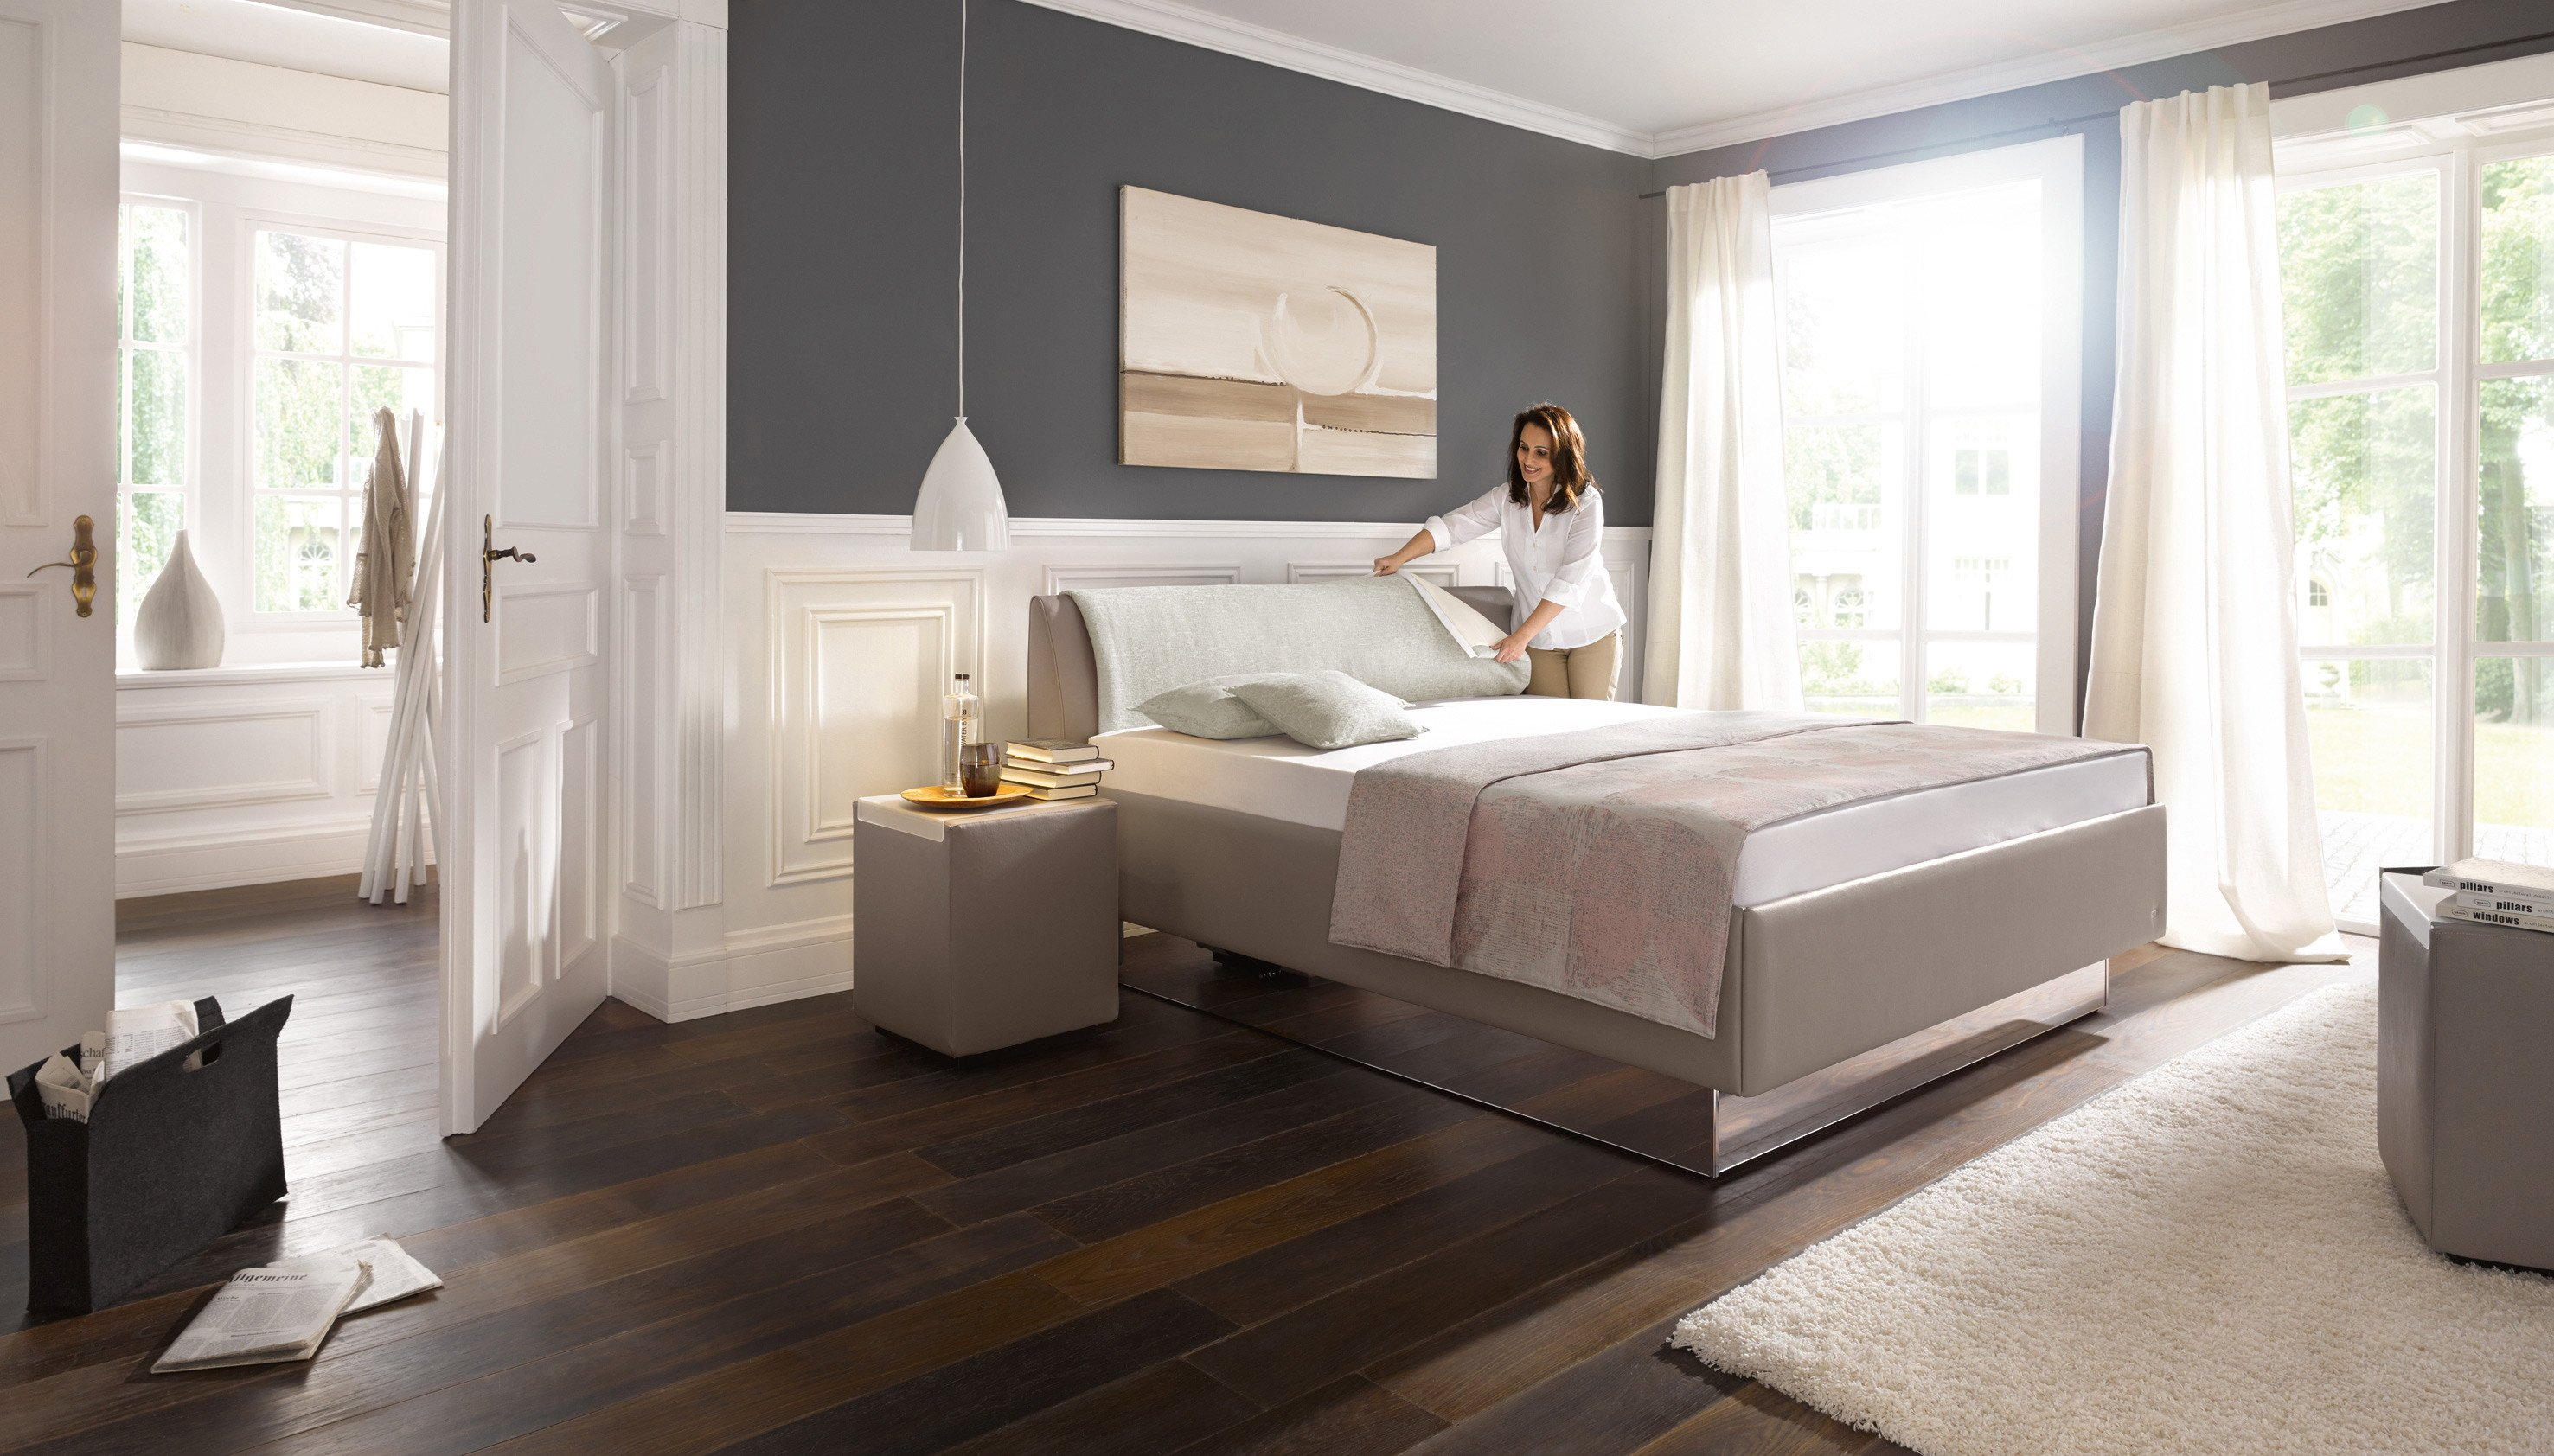 polsterbett composium von ruf in taupe m bel letz ihr online shop. Black Bedroom Furniture Sets. Home Design Ideas